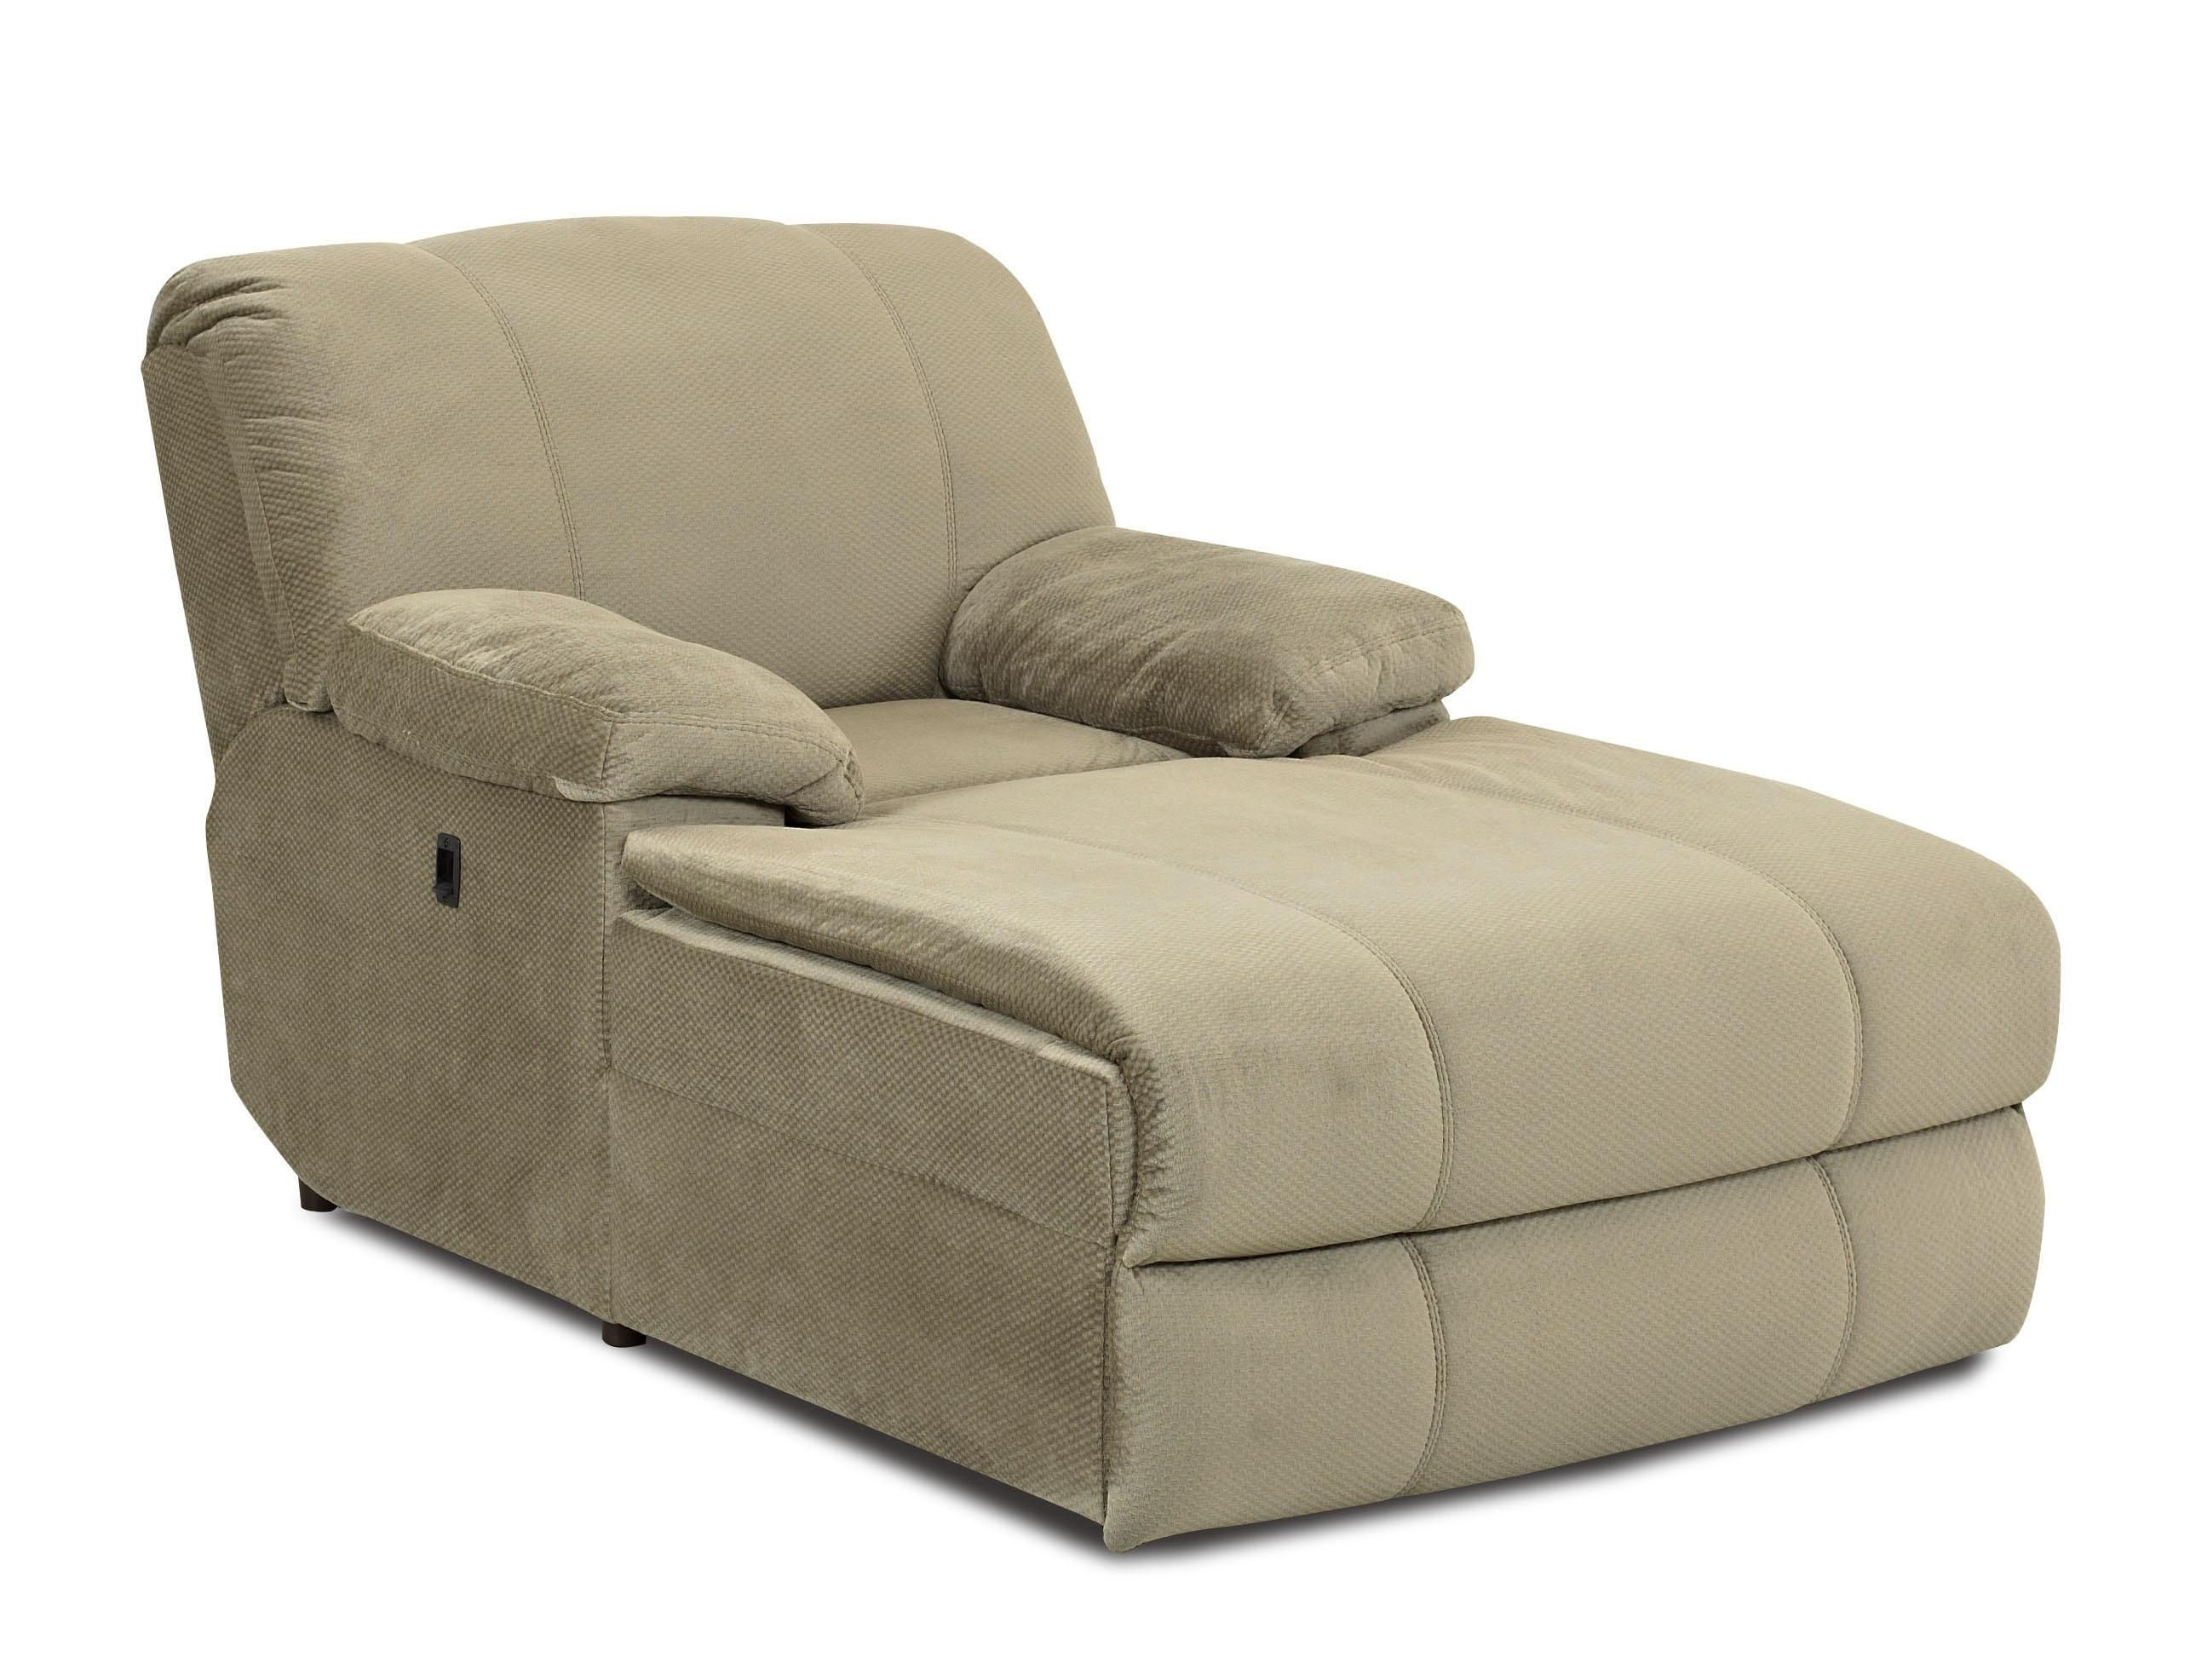 Kensington Reclining Chaise Lounge By Ellis Home Home